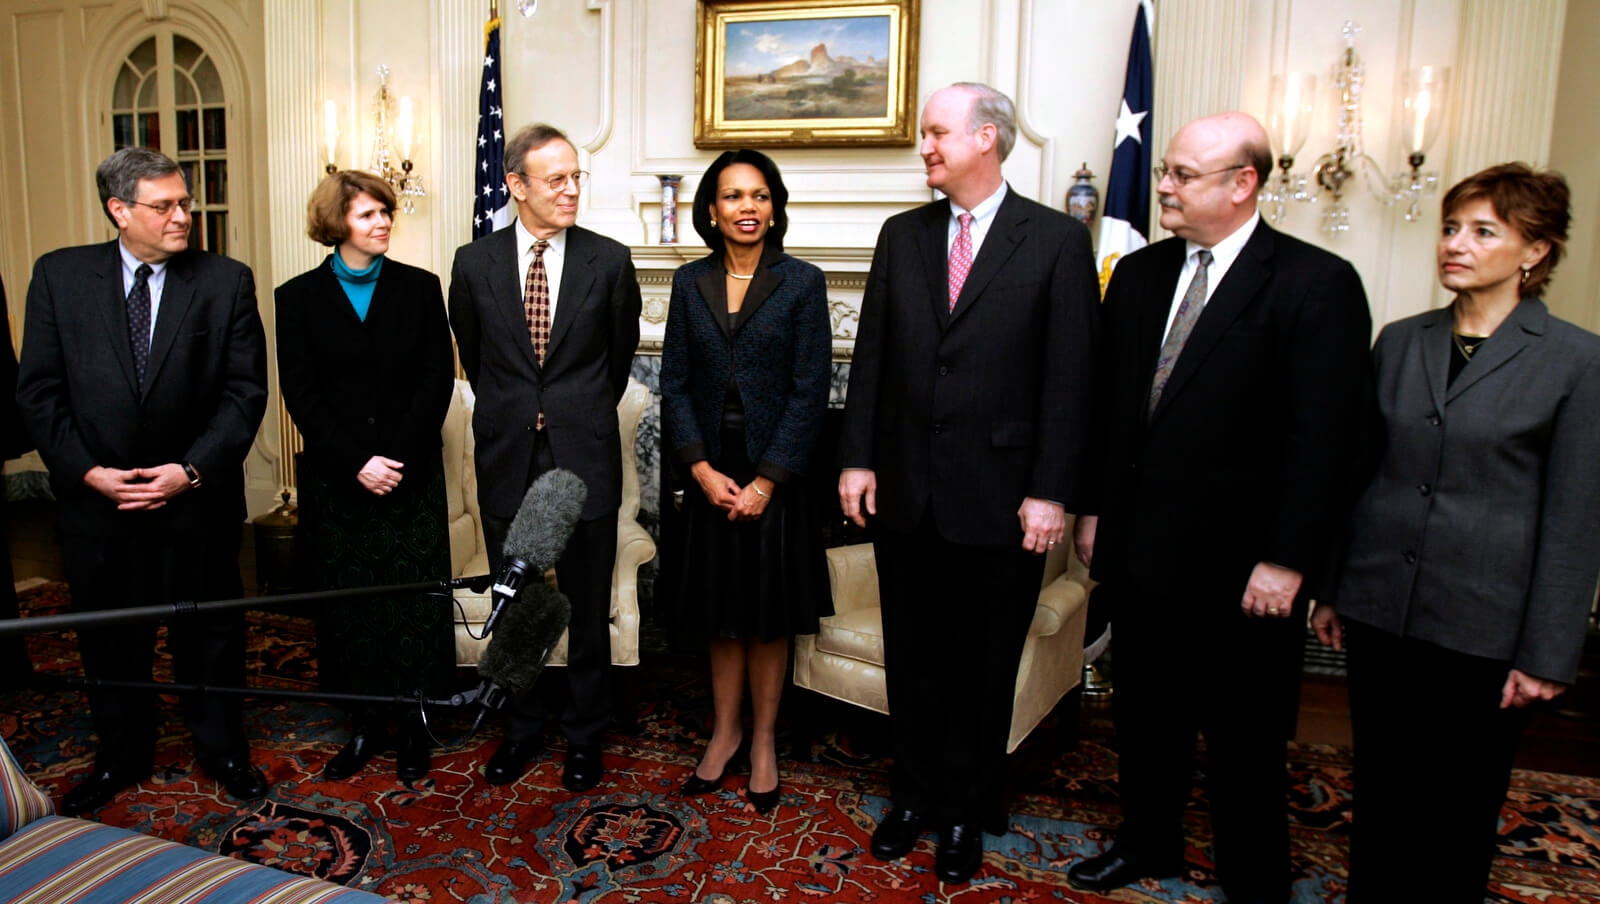 Condoleezza Rice, fourth from left, accompanied by participants from Non-governmental organizations, speaks to reporters at the State Department in Washington, Wednesday, Jan. 31, 2007. From left are, Ken Wollack, National Democratic Institute; Jennifer Windsor, Freedom House; Carl Gershman, National Endowment for Democracy; Rice; Lorne Craner, International Republican Institute; John Sullivan, Center for International Private Enterprise; and Ellie Larson, Solidarity Center. Manuel Balce Ceneta | AP